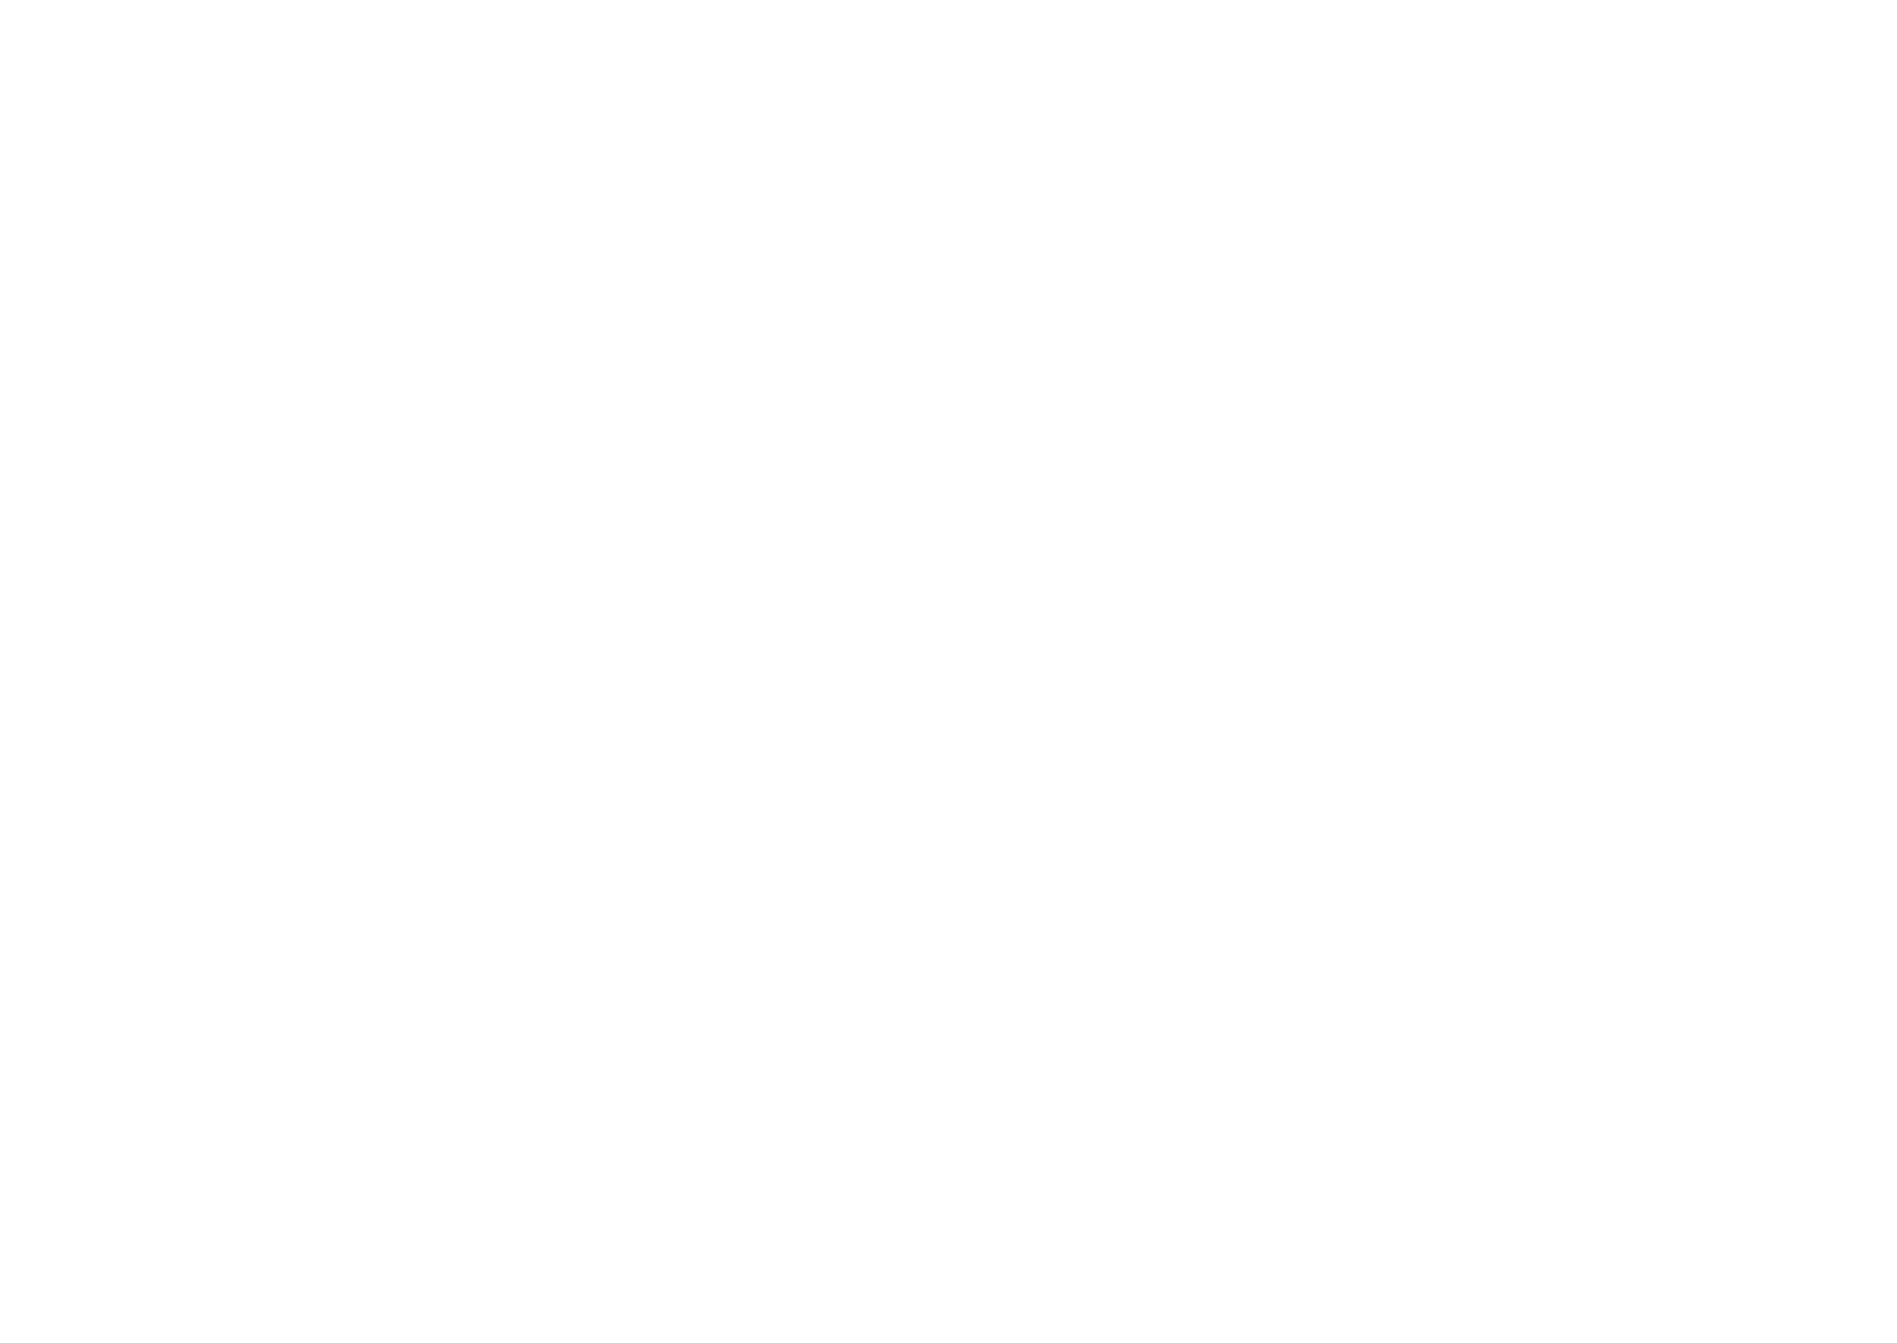 Shaded map of operations within the United States